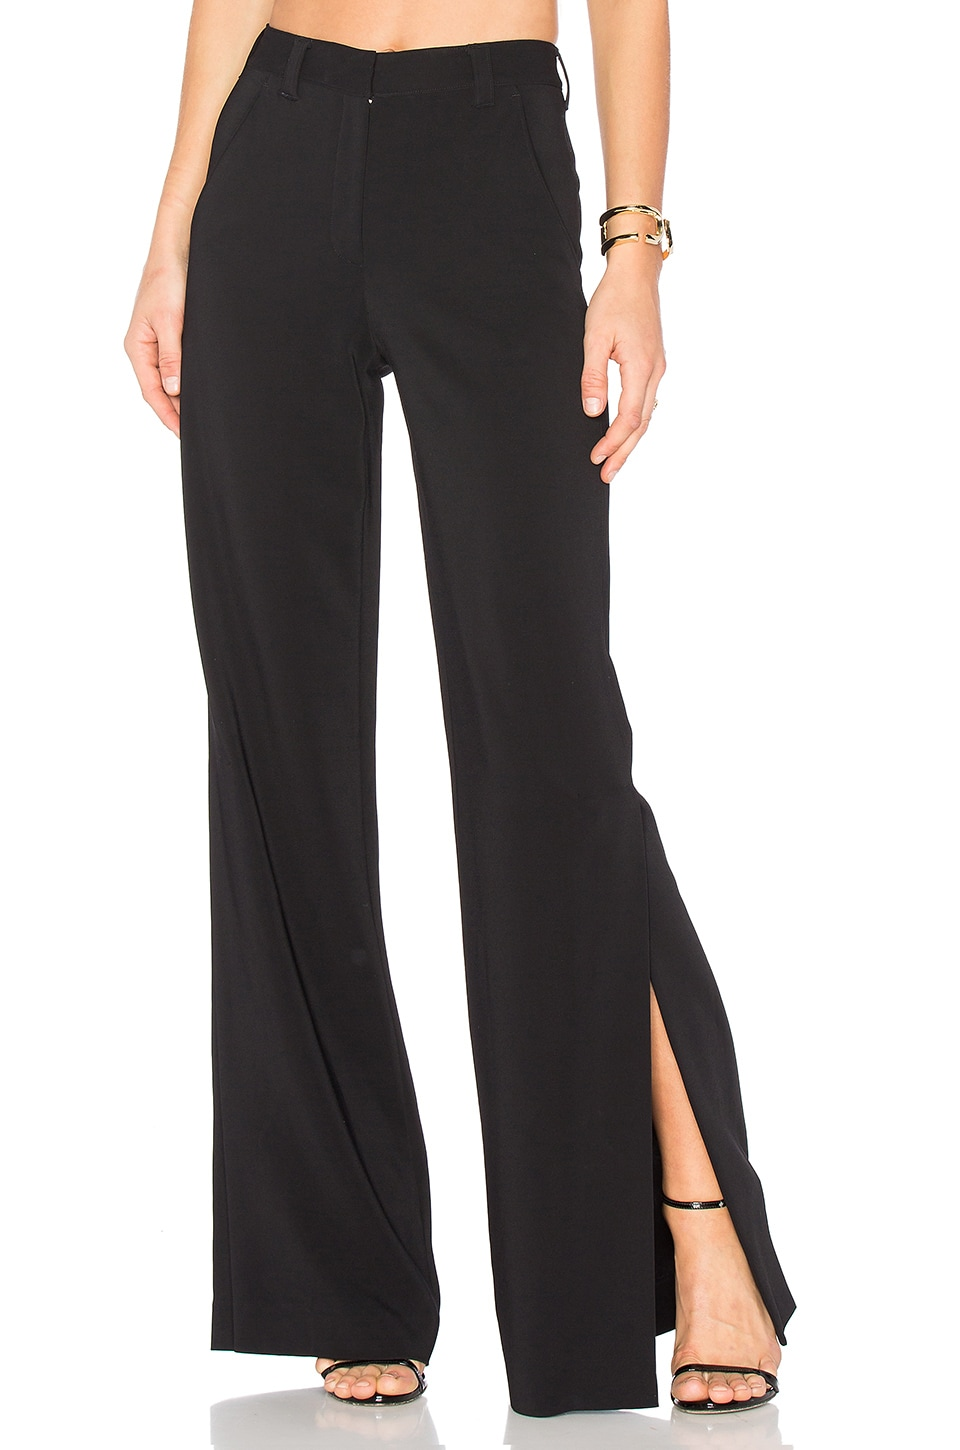 A.L.C. Miles Pants in Black